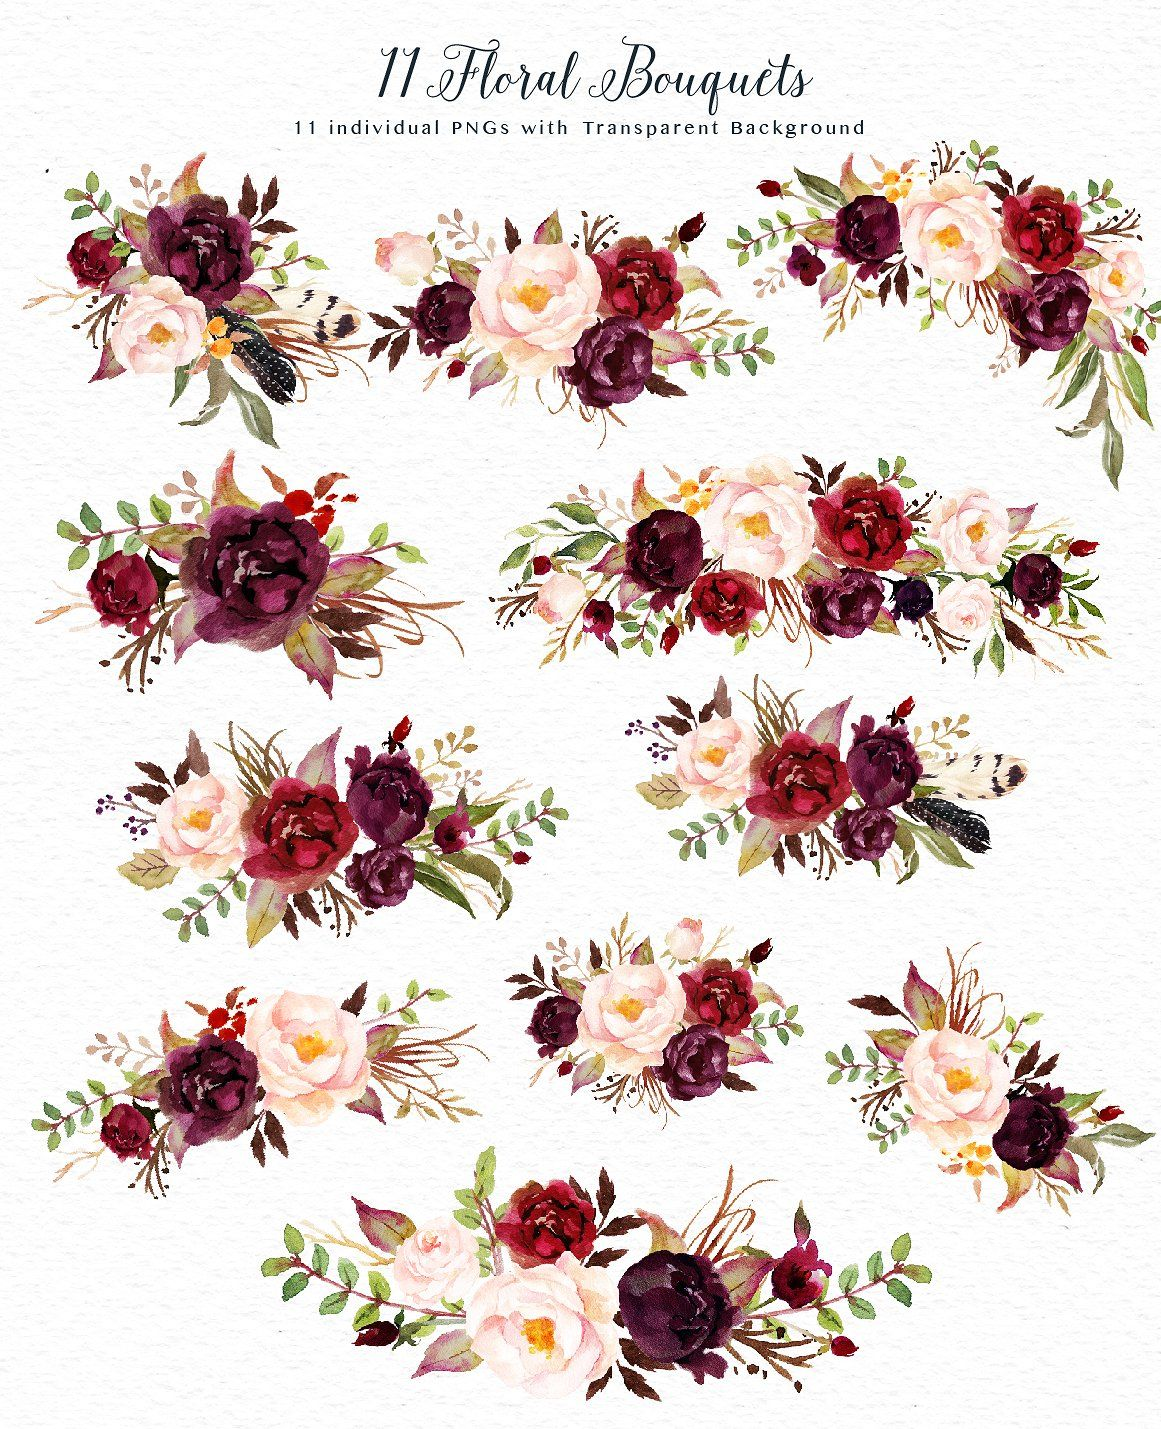 Design tools | Great floral garland designs for wedding invitations | Watercolor flower Clip Art-Marsala | Watercolor flower Clip Art-Marsala Blush pink, Burgundy Dark red - Floral wreath | Flower clipart | DIY Wedding invitations |  iIllustrations - 5 | Ad #clipartfreebies